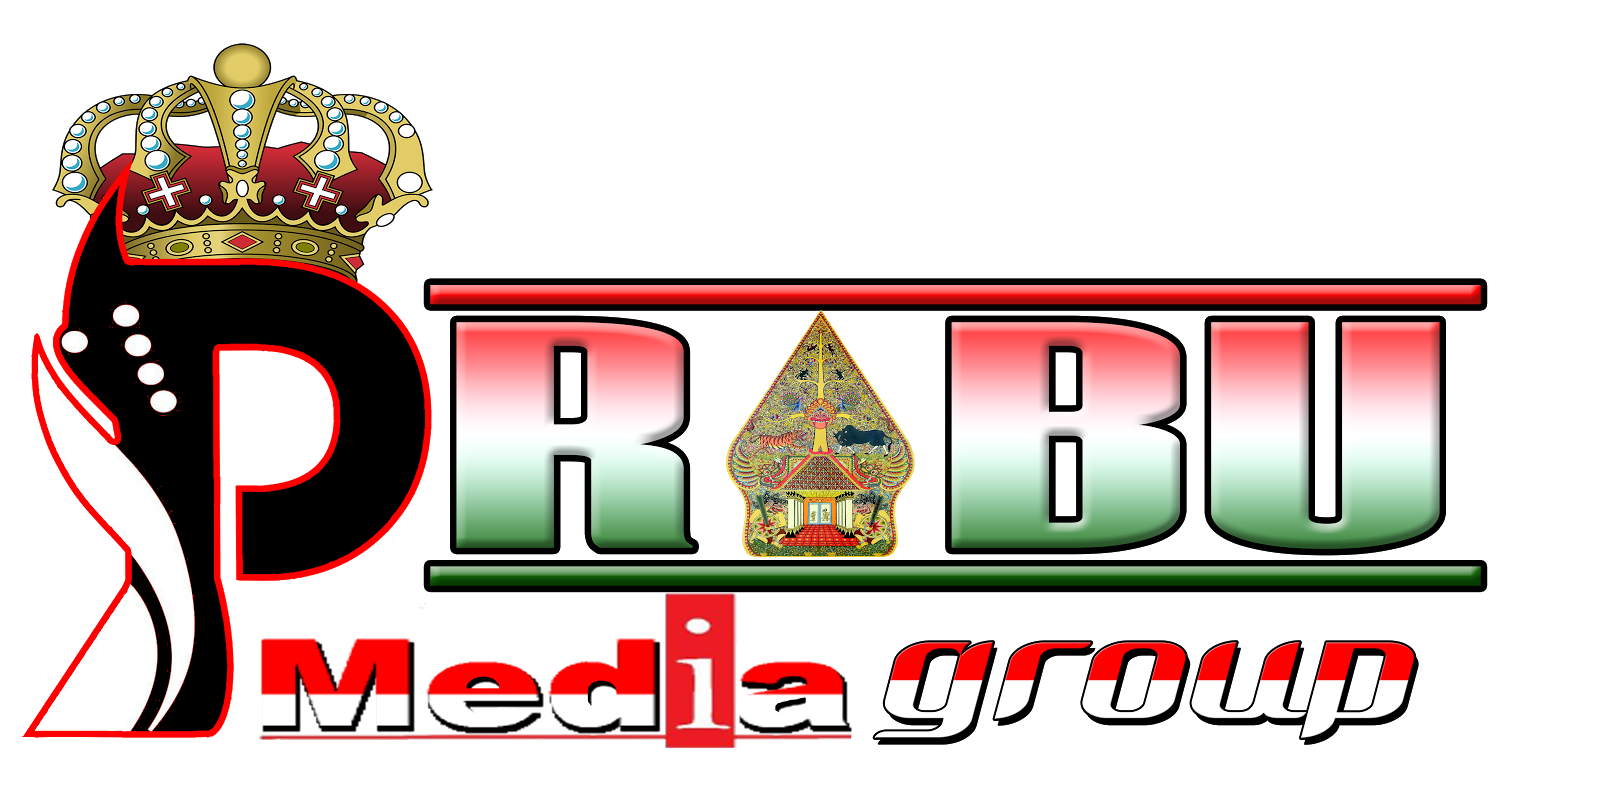 Prabu Media Group